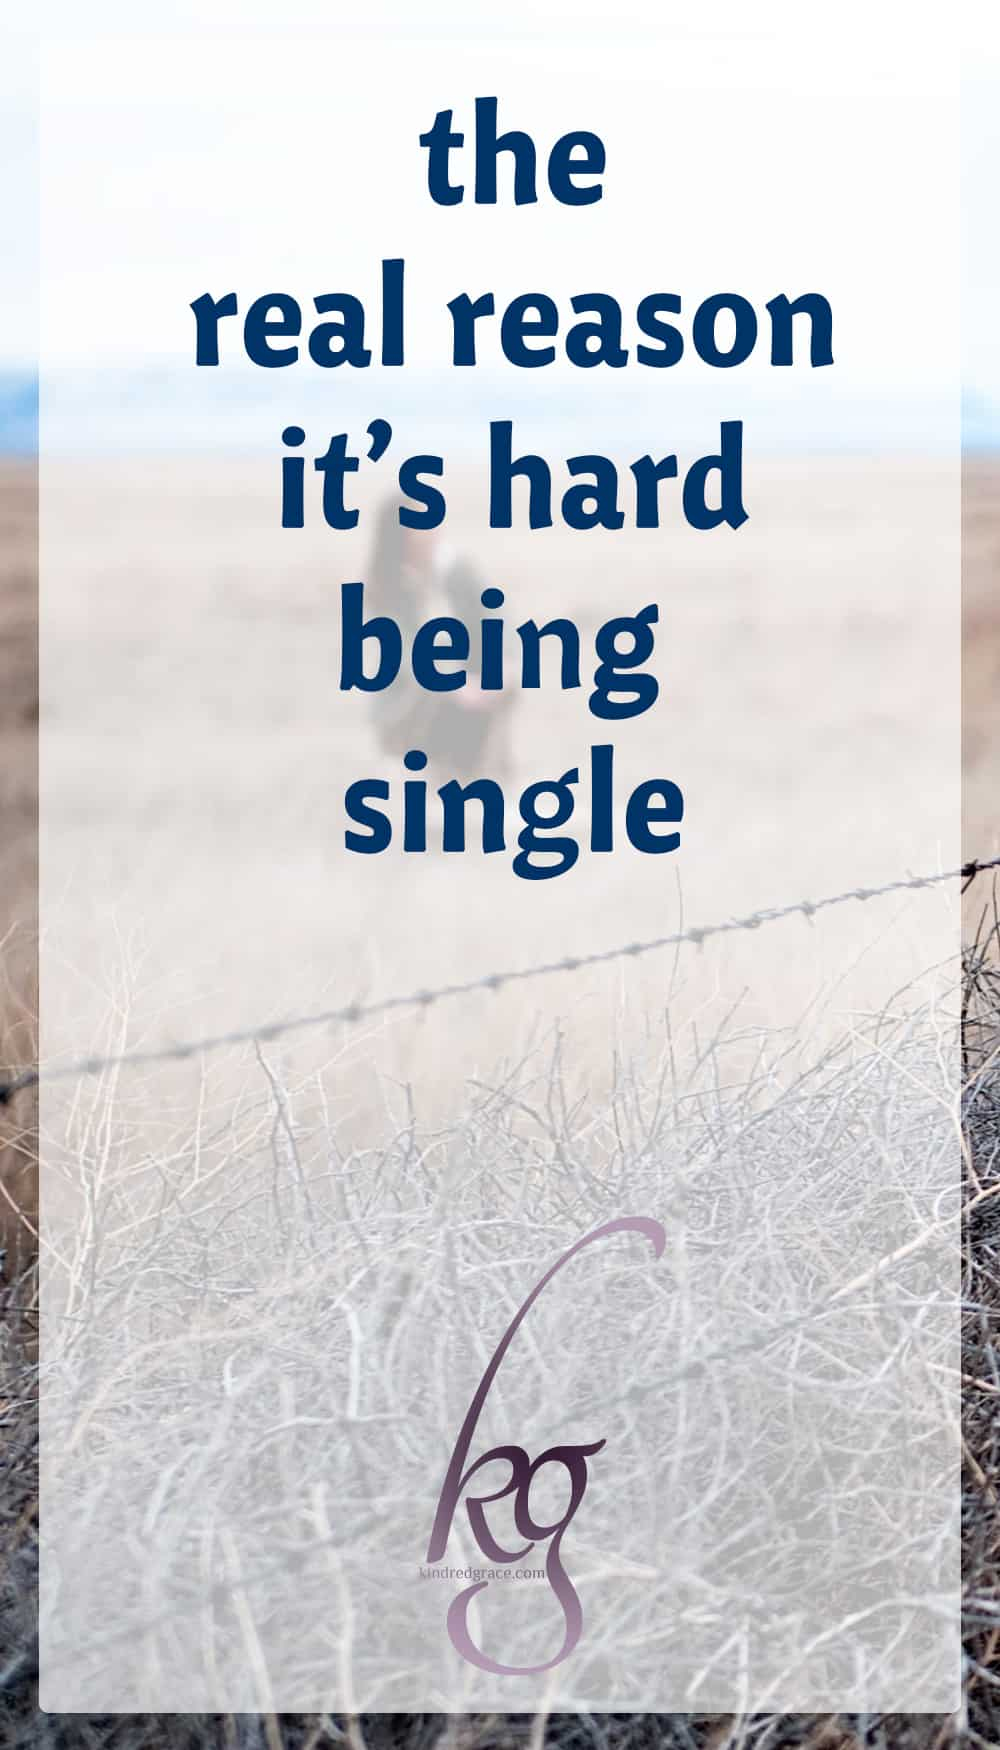 the real reason it's hard being single via @KindredGrace